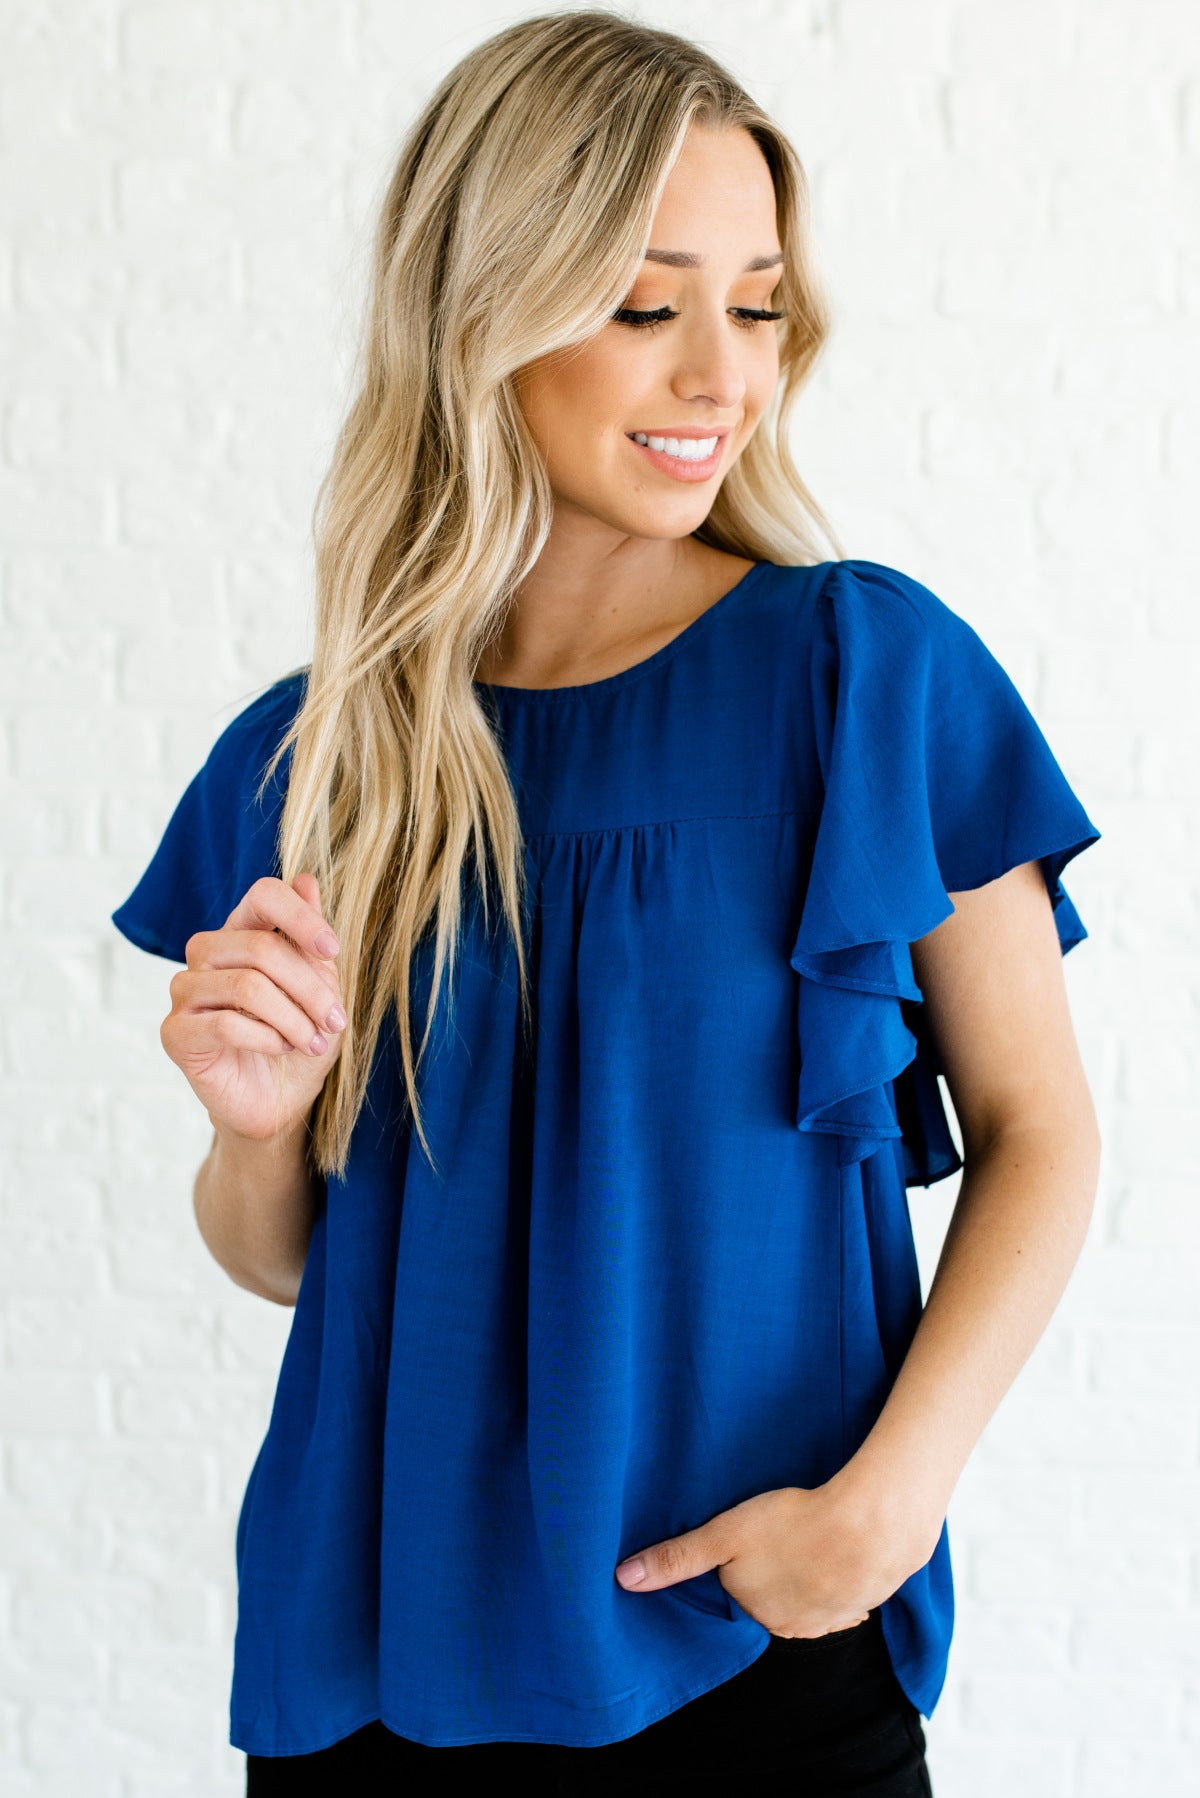 Royal Blue Butterfly Sleeve Style Boutique Tops for Women